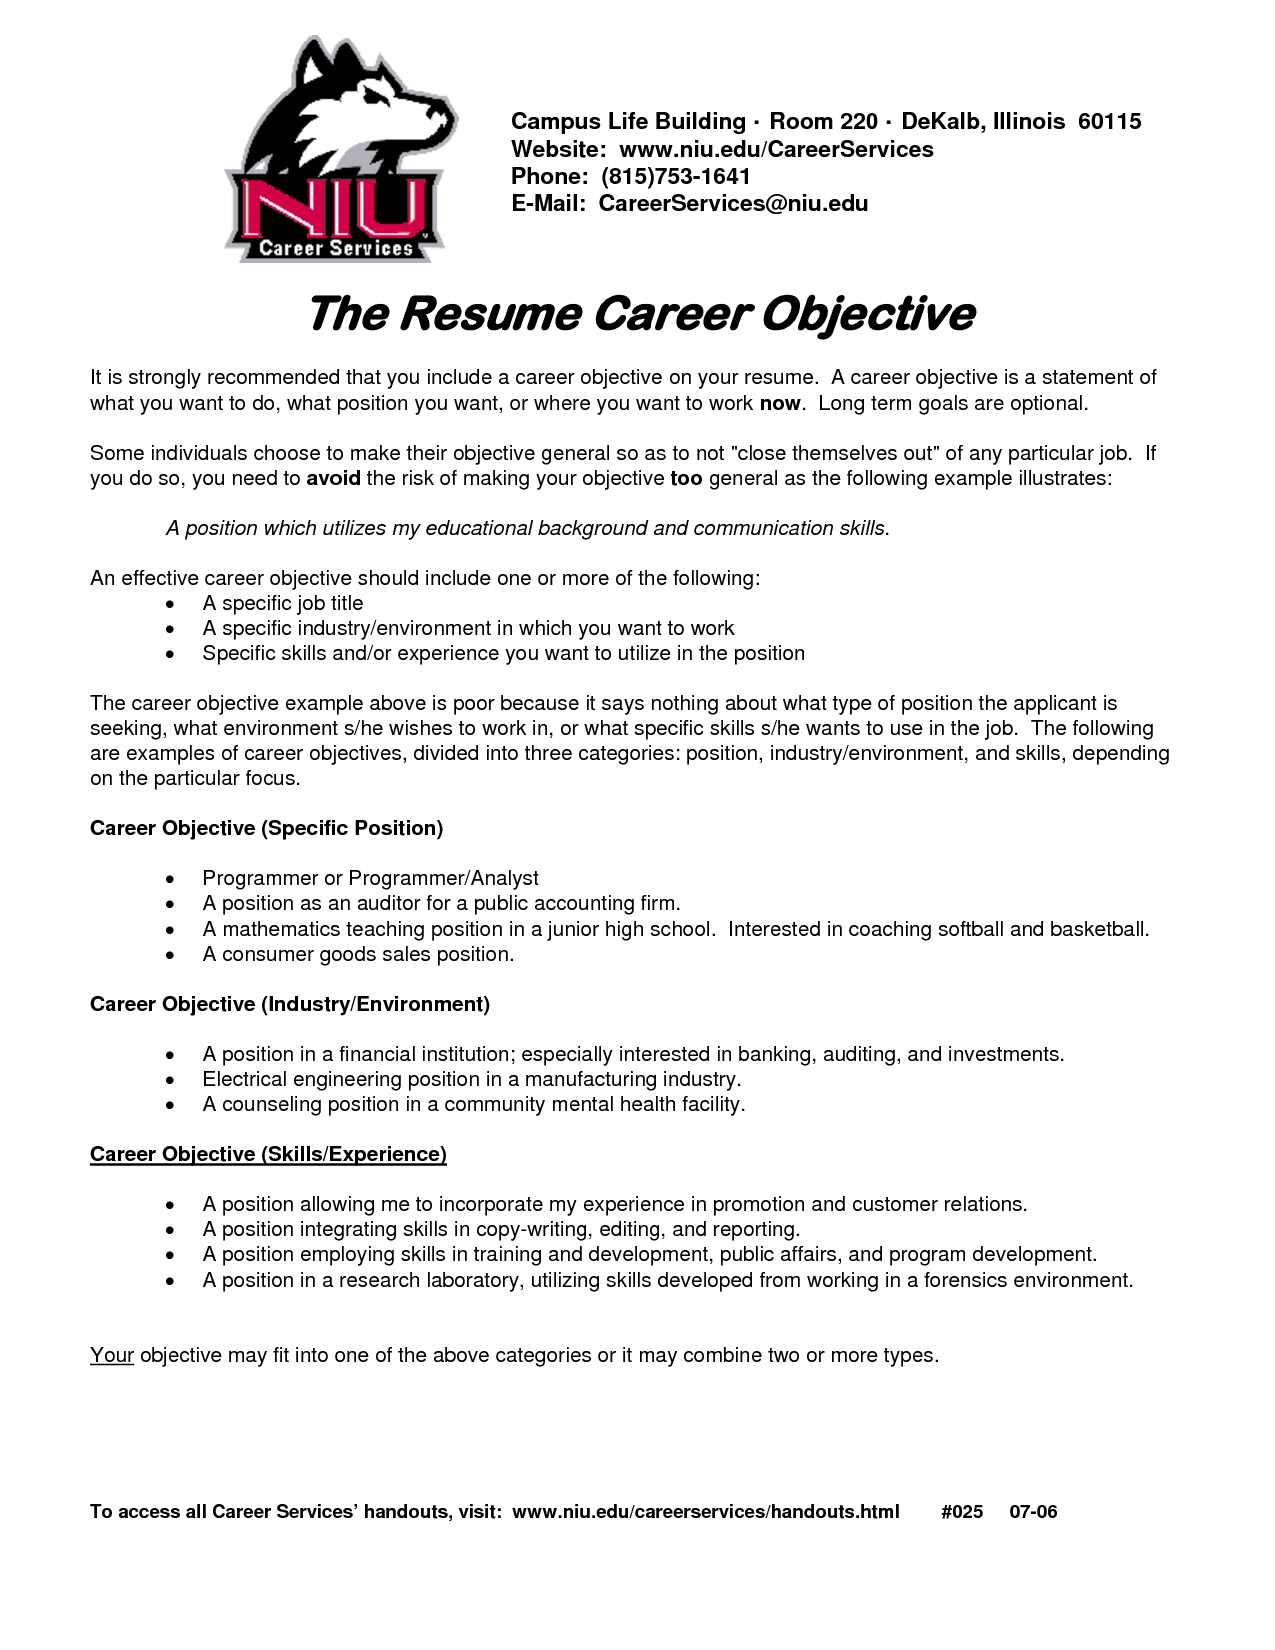 career objective resume examples free download - What Is An Objective On A Resume